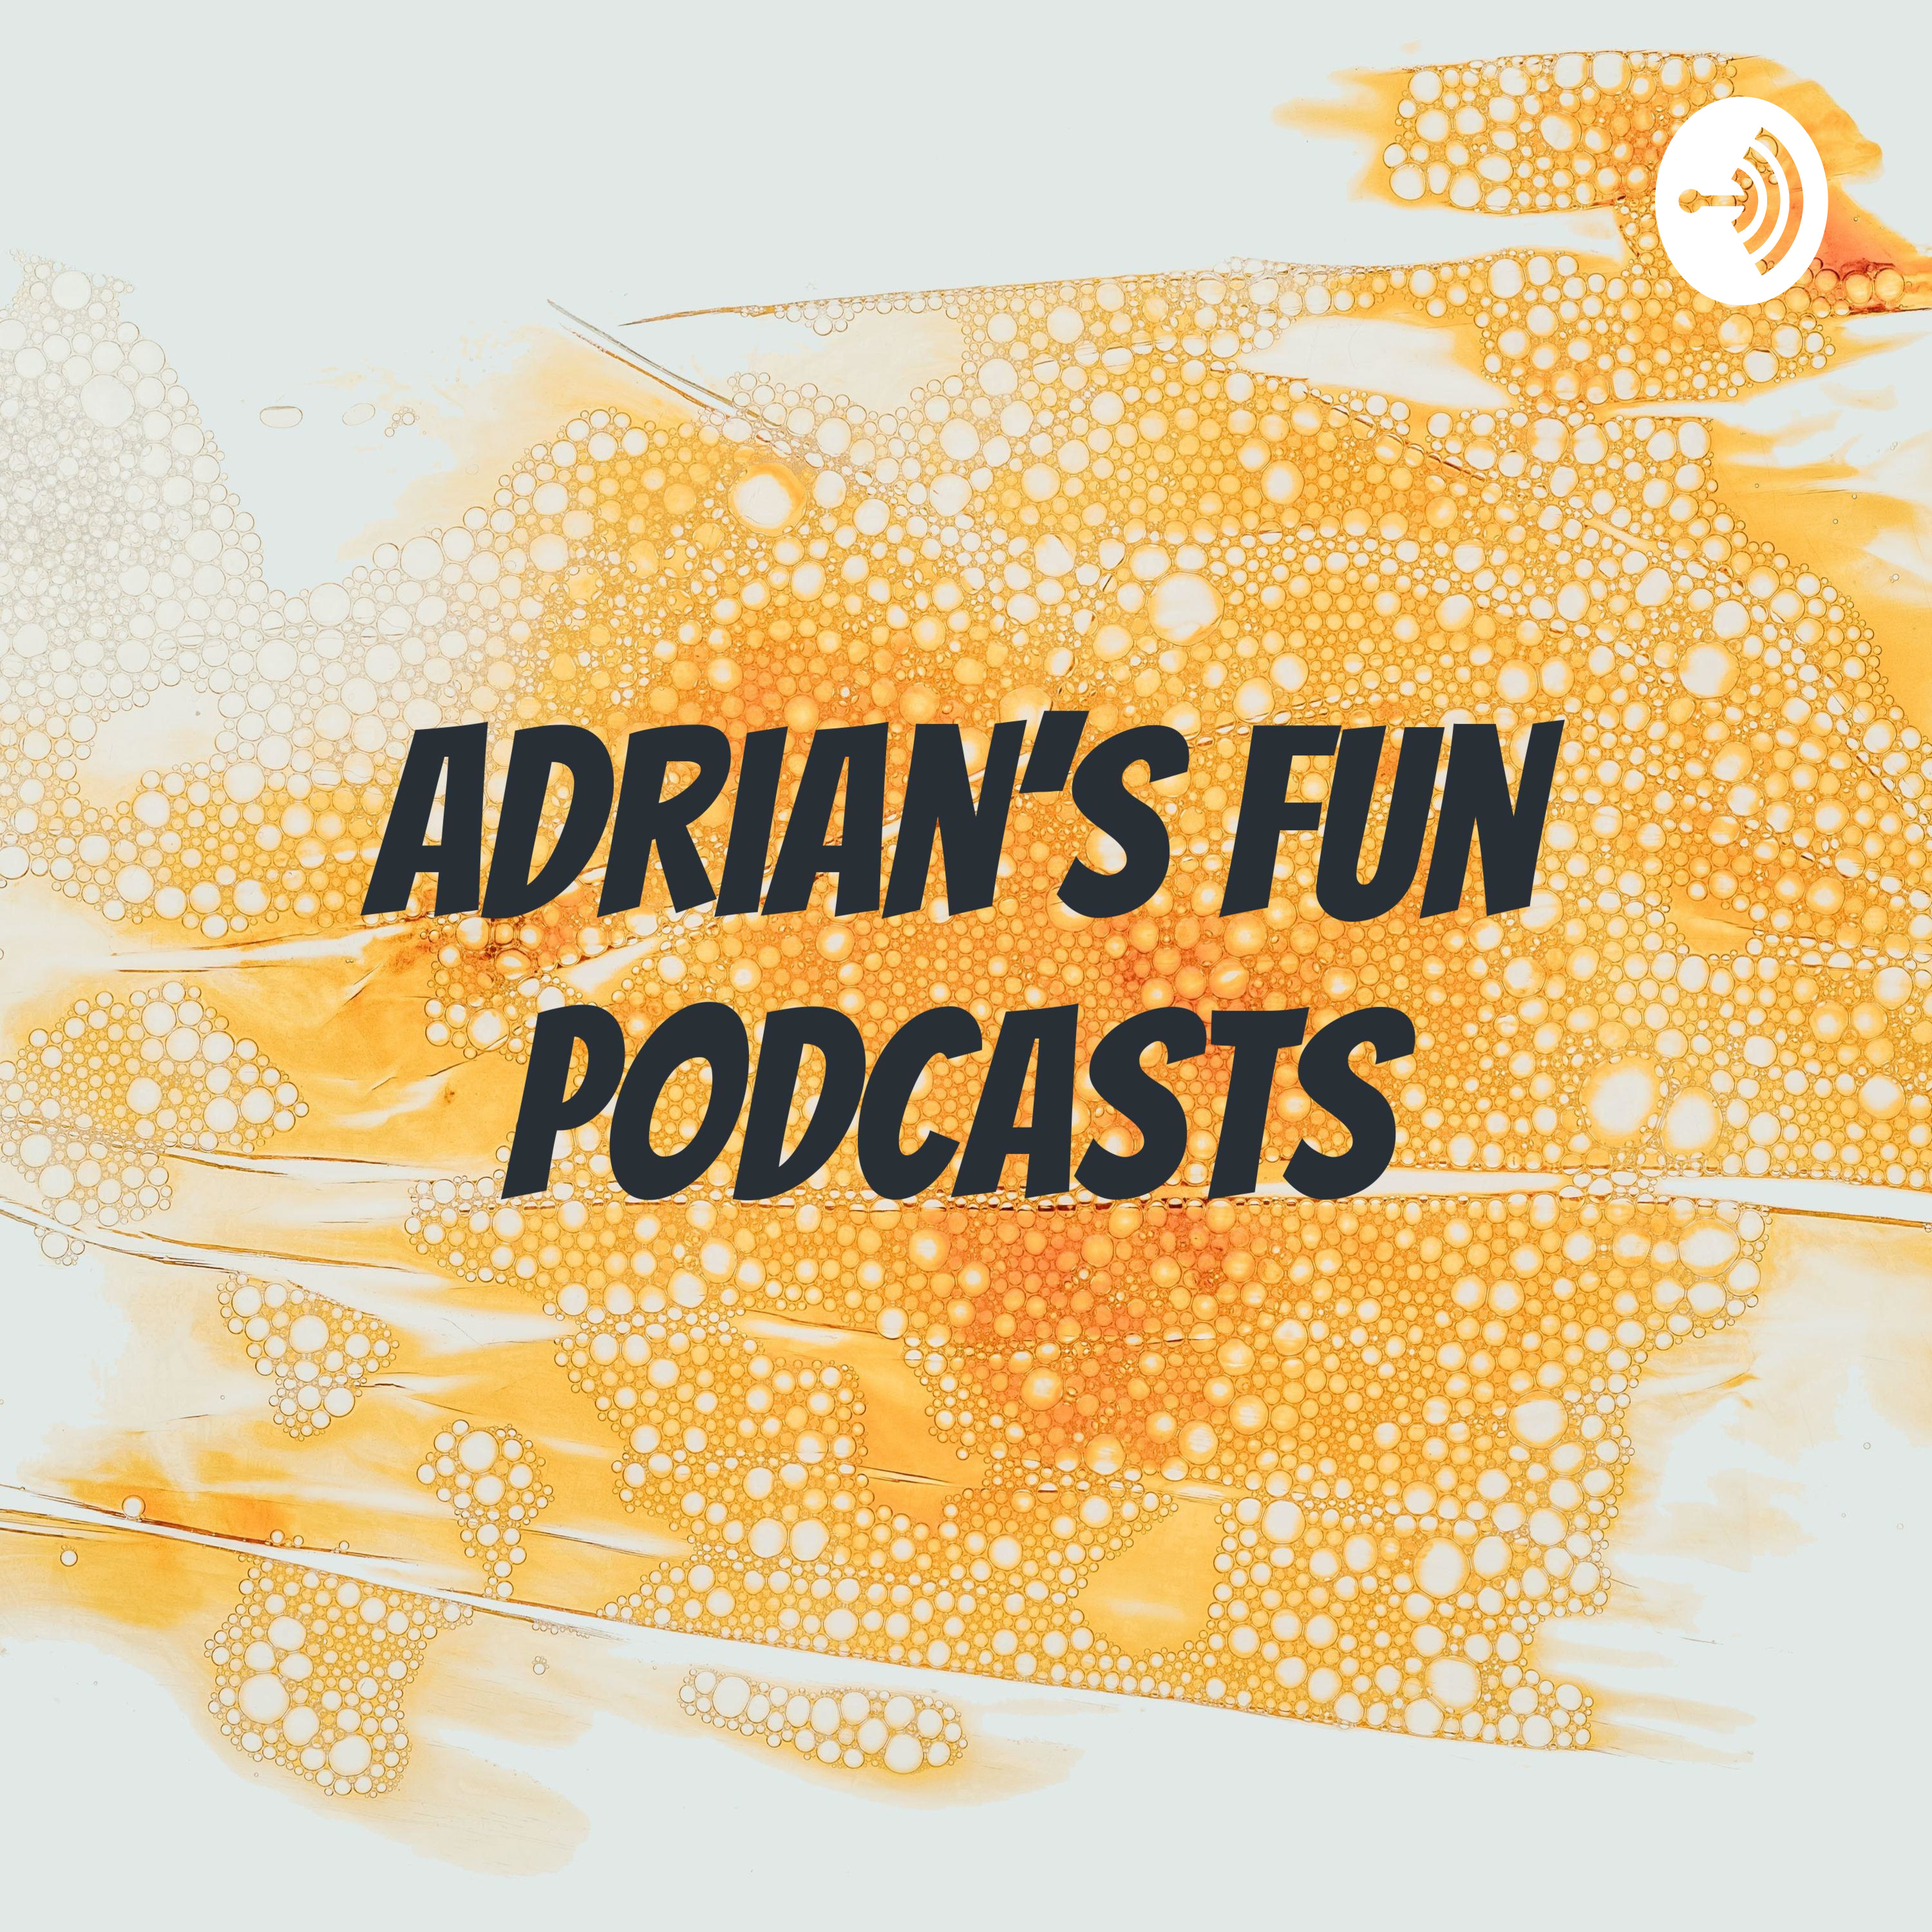 Adrian's fun podcasts